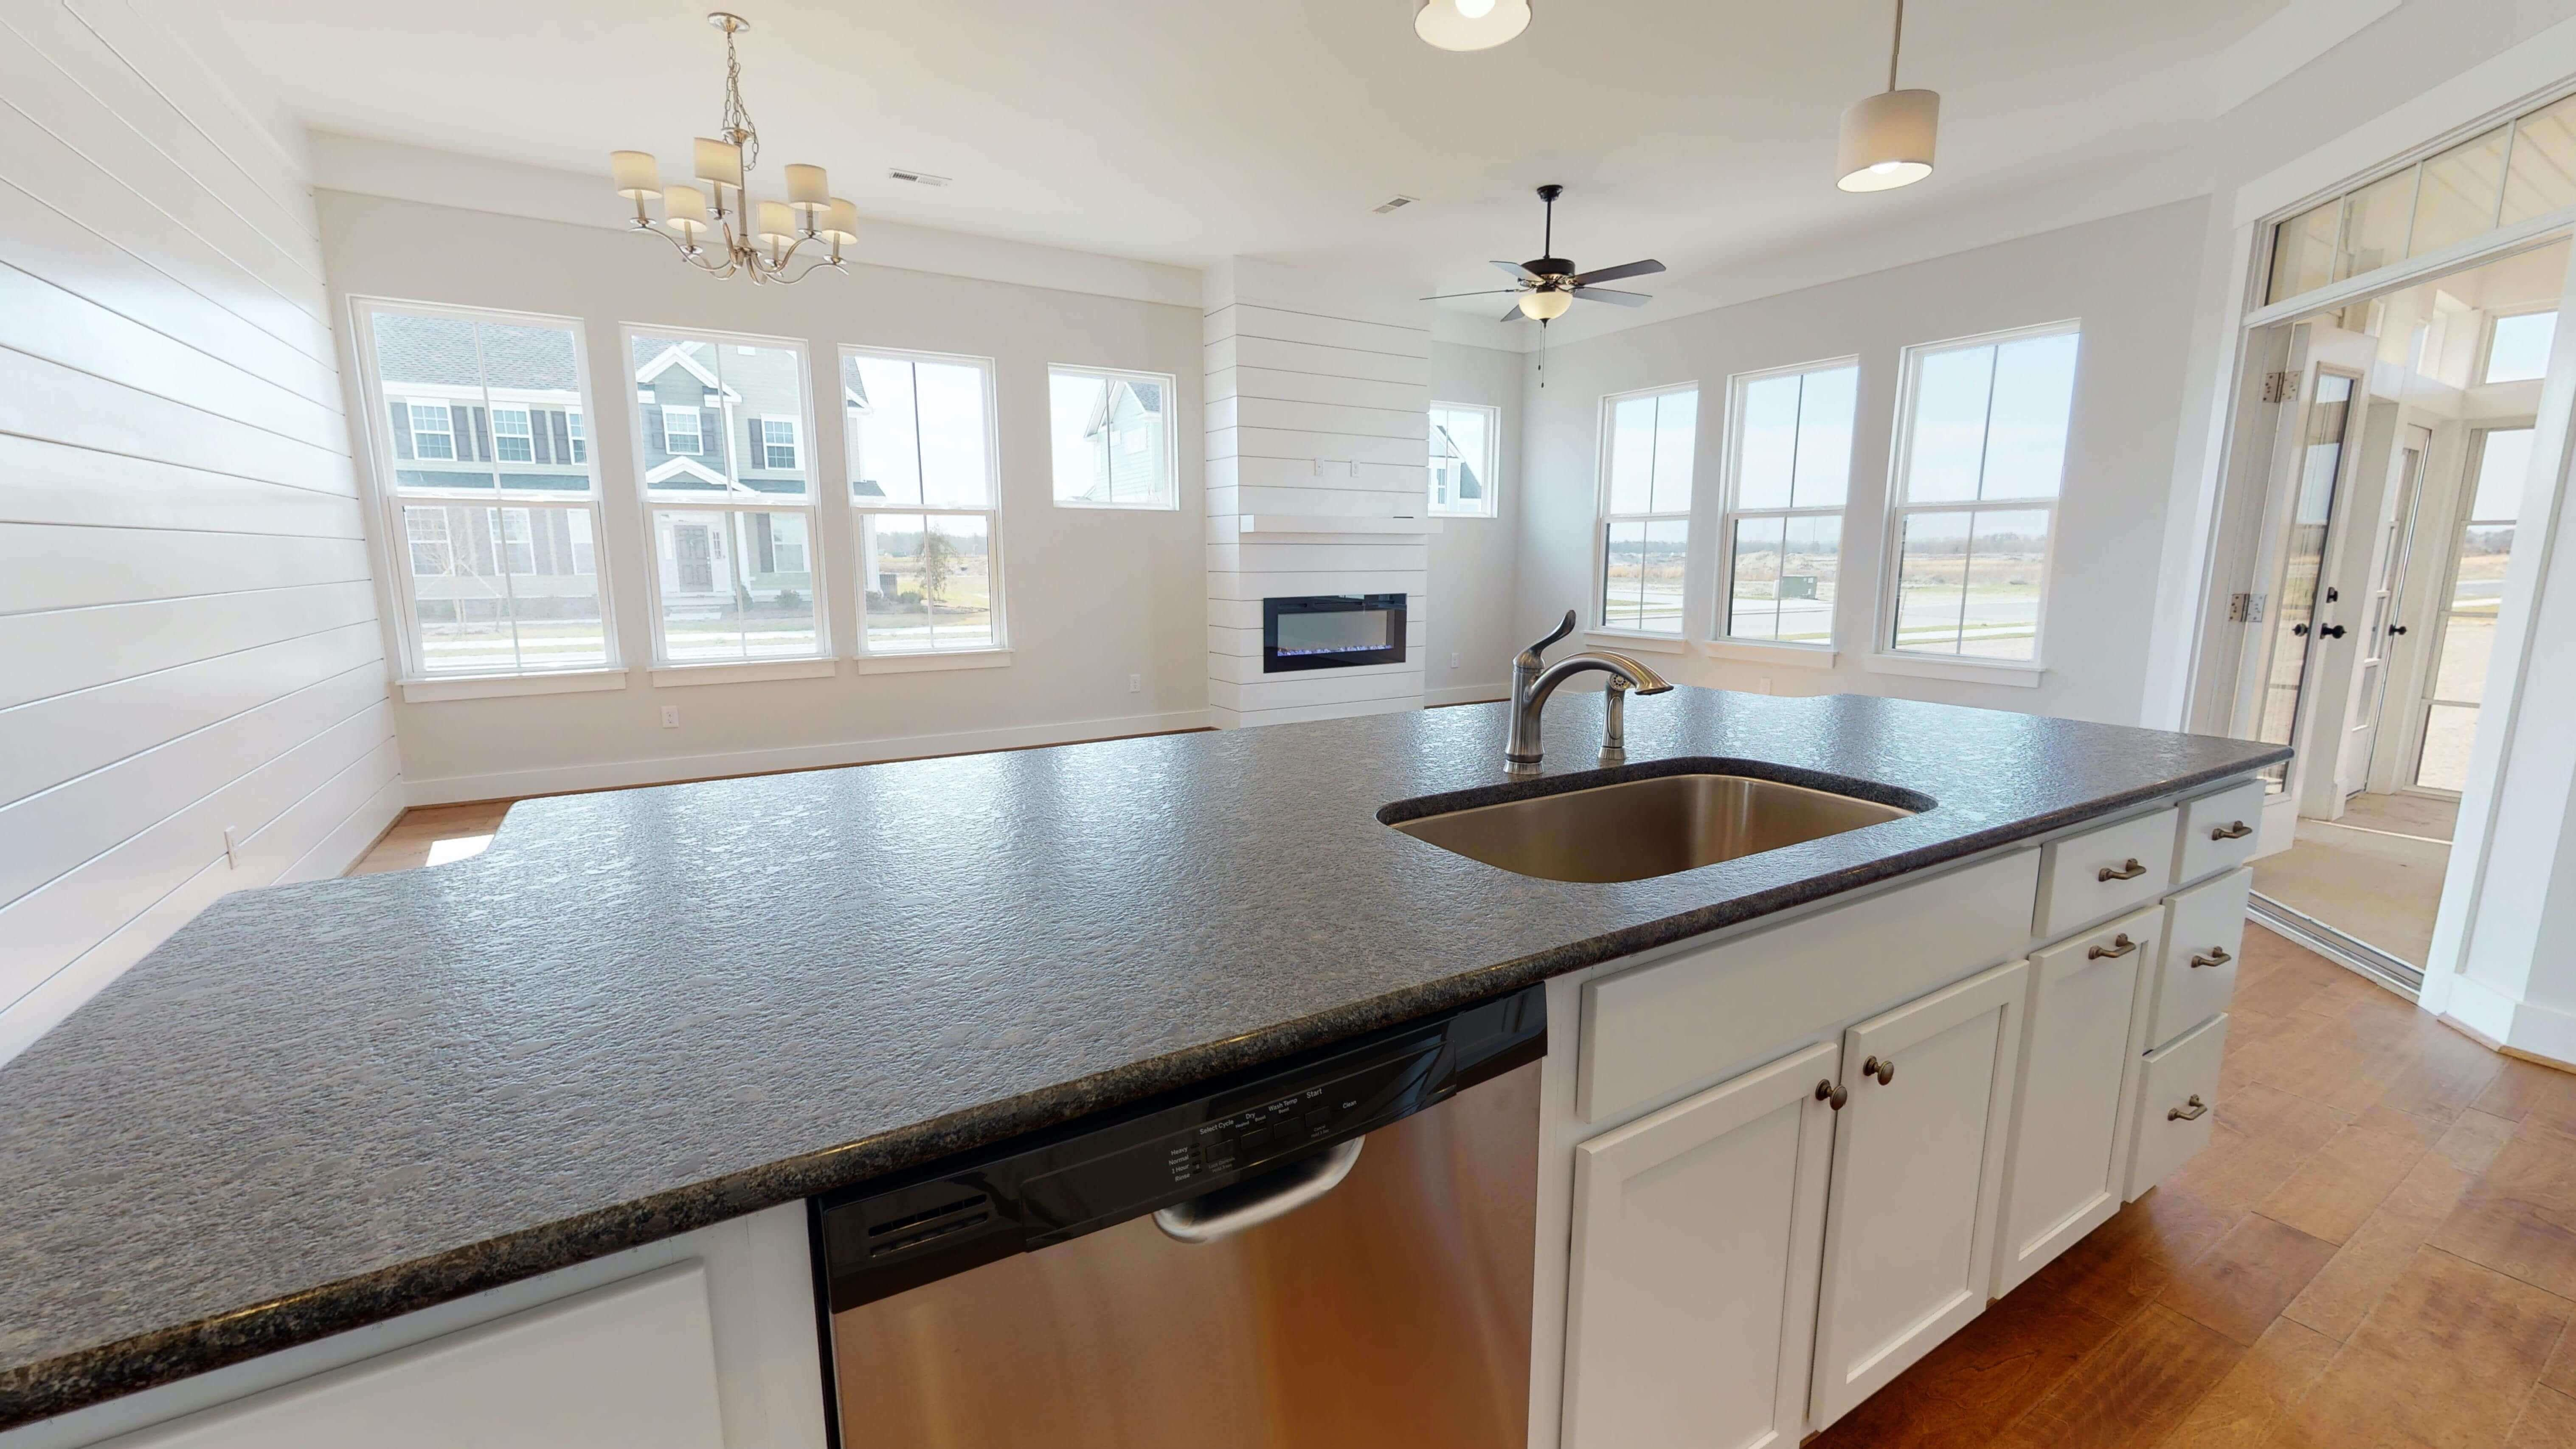 Kitchen featured in the Nottoway Farmhouse By Stephen Alexander Homes in Outer Banks, NC